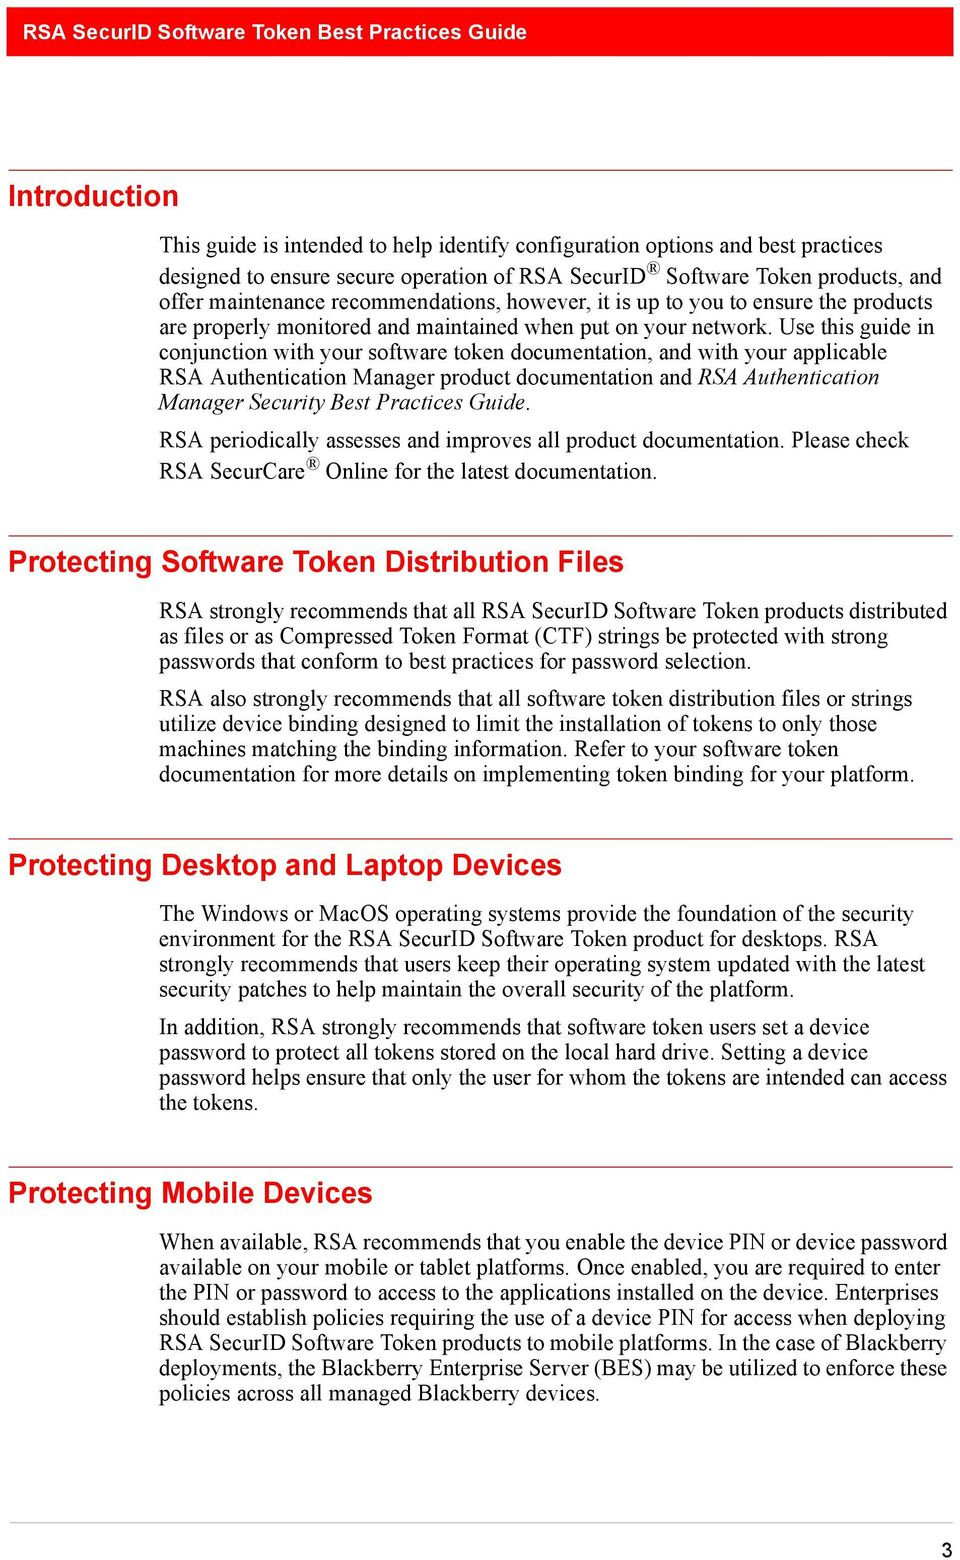 RSA SecurID Software Token Security Best Practices Guide - PDF